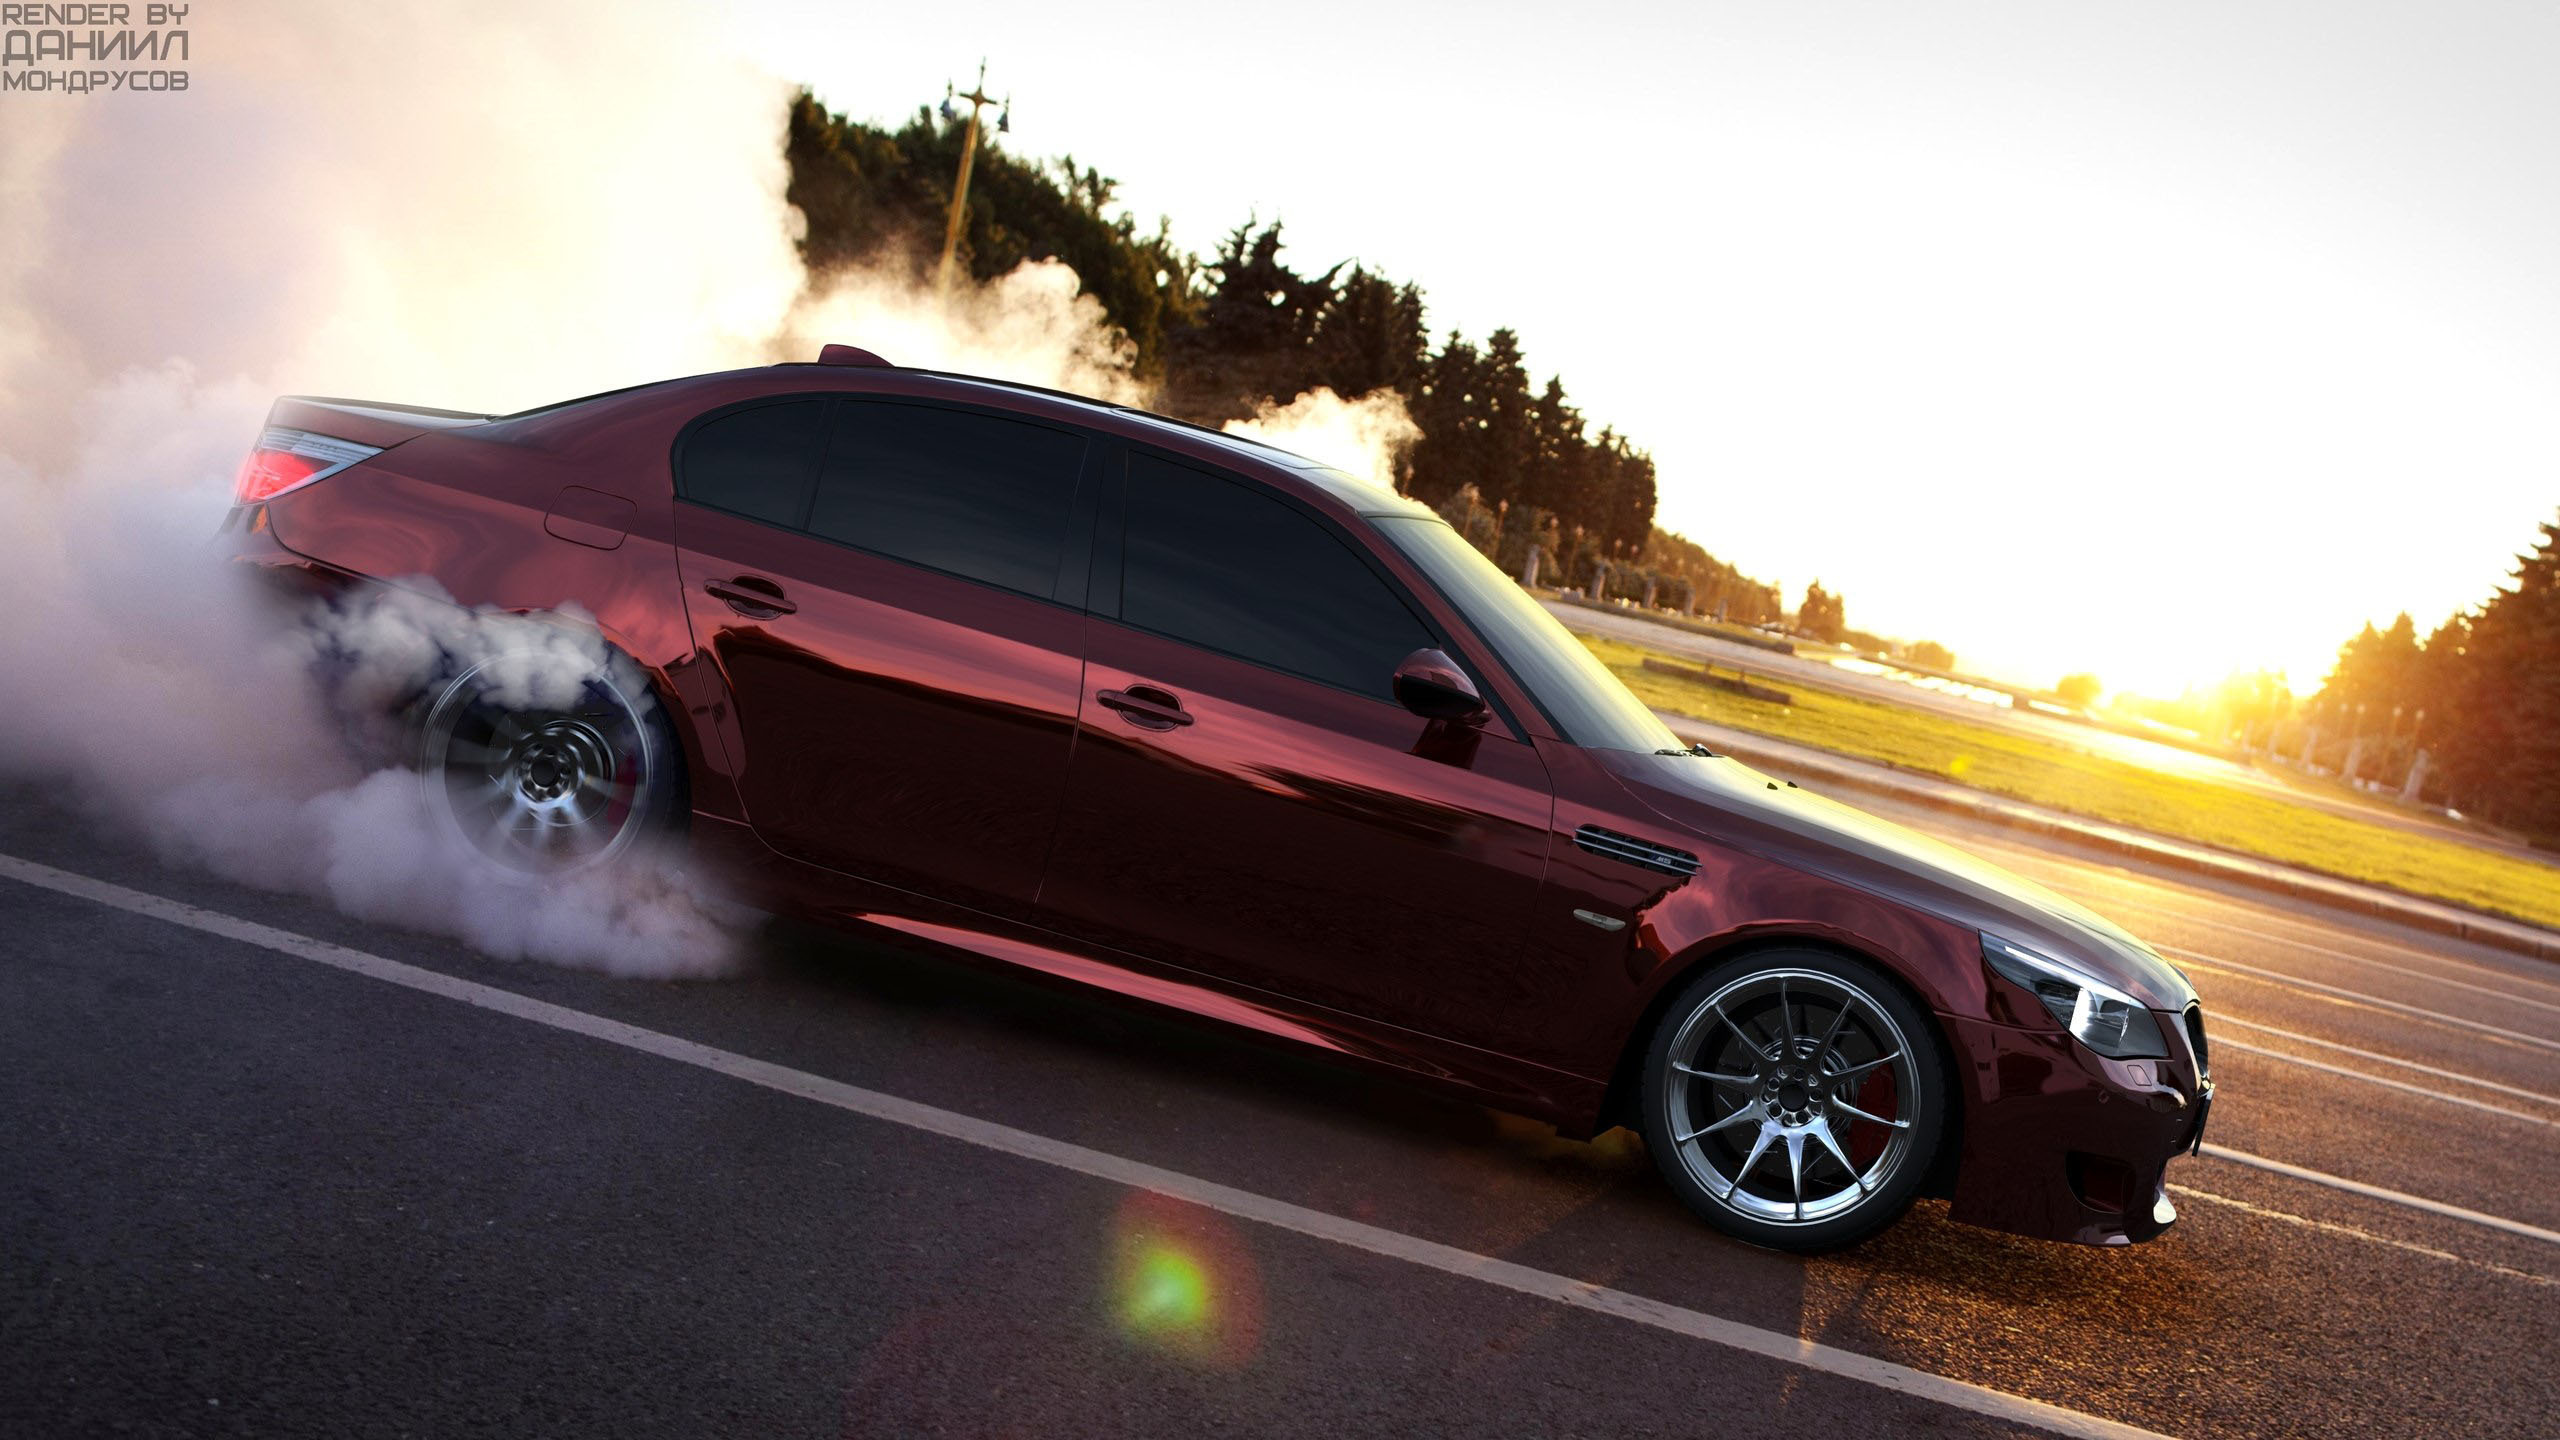 BMW M5 HD Wallpapers Images Backgrounds 2560x1440